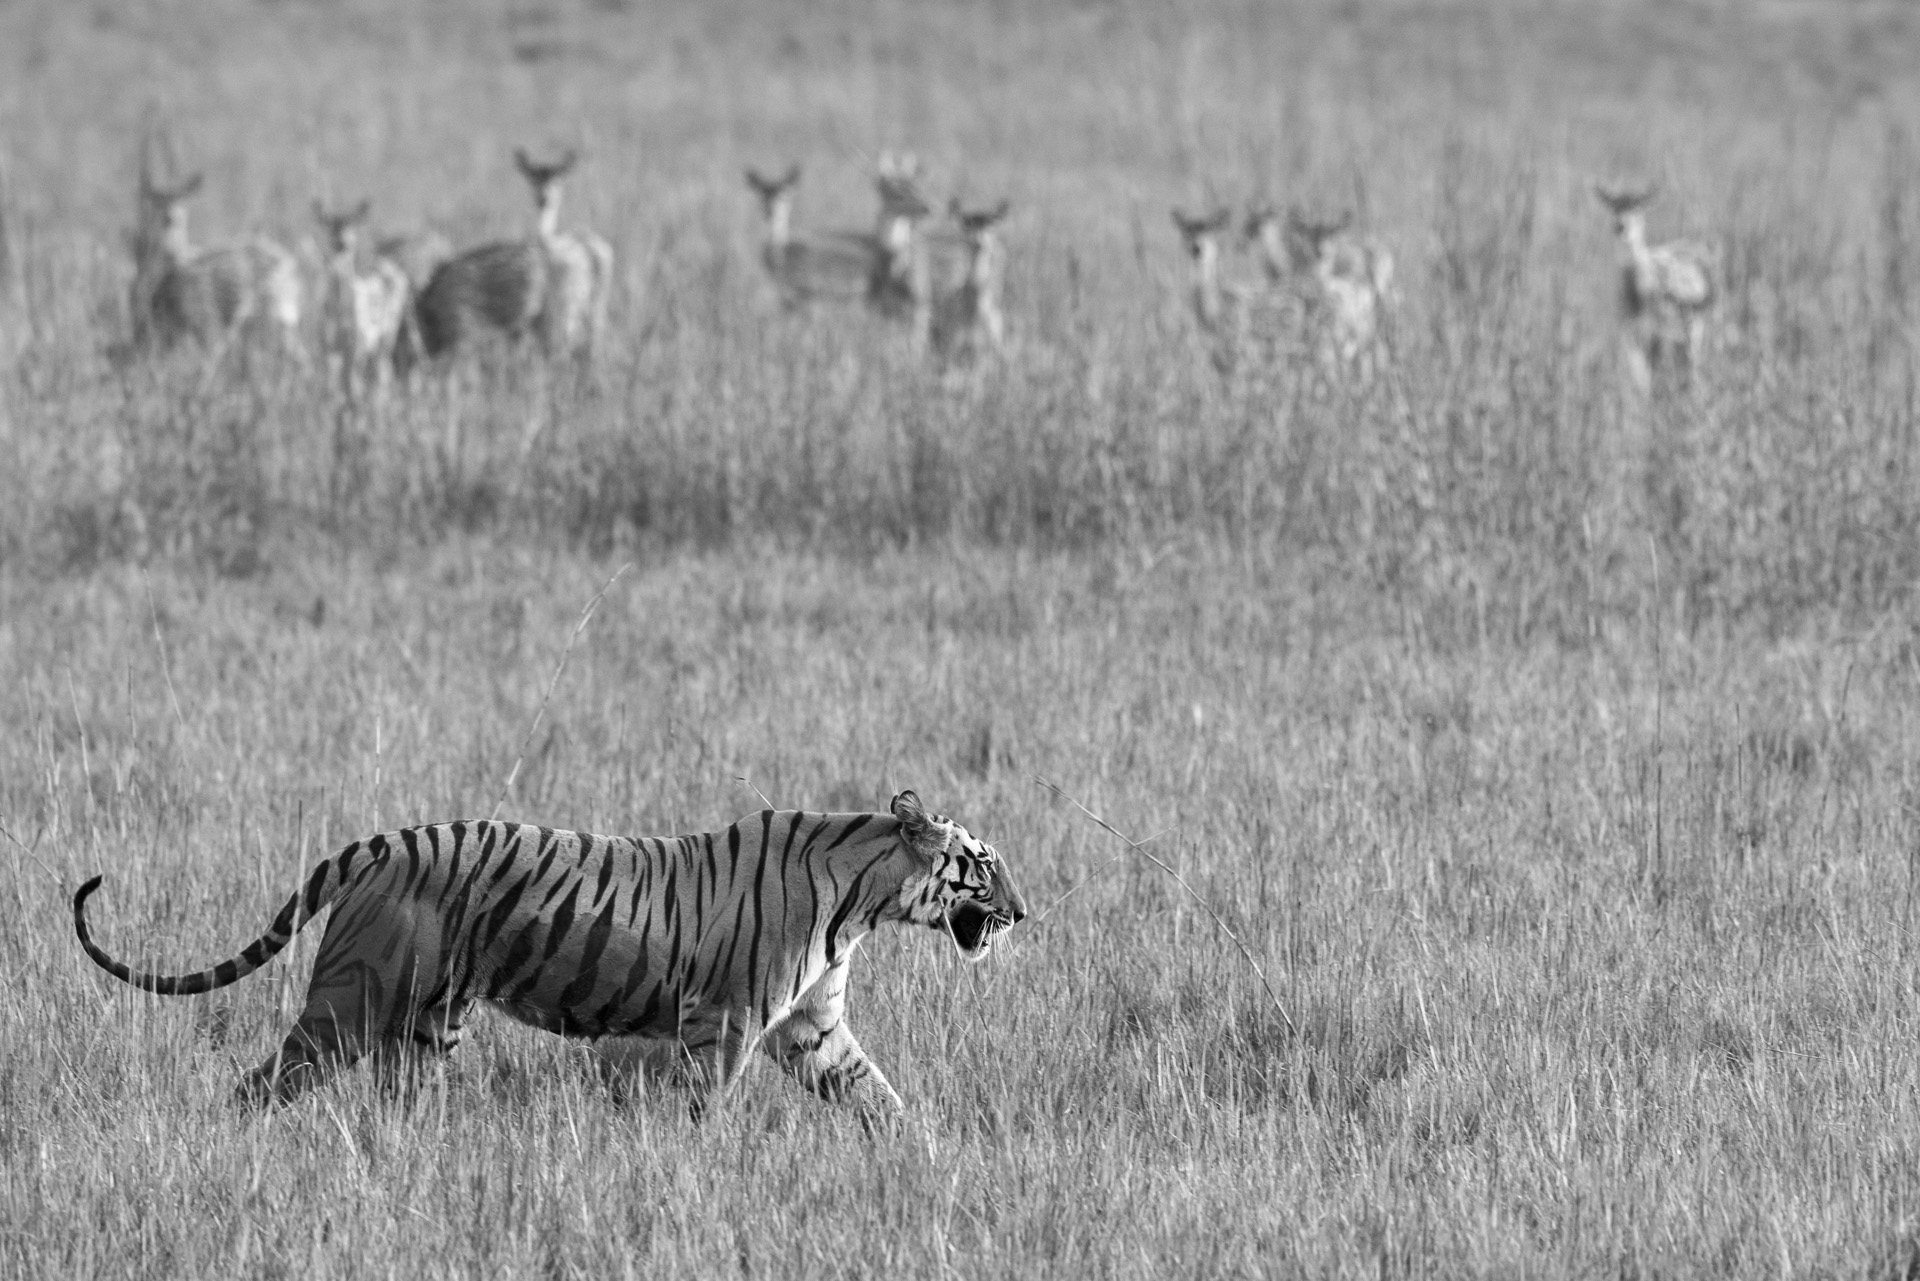 Bengal tigress being watched by chital/spotted deer while walking across meadow, Bandhavgarh National Park, Madhya Pradesh, India